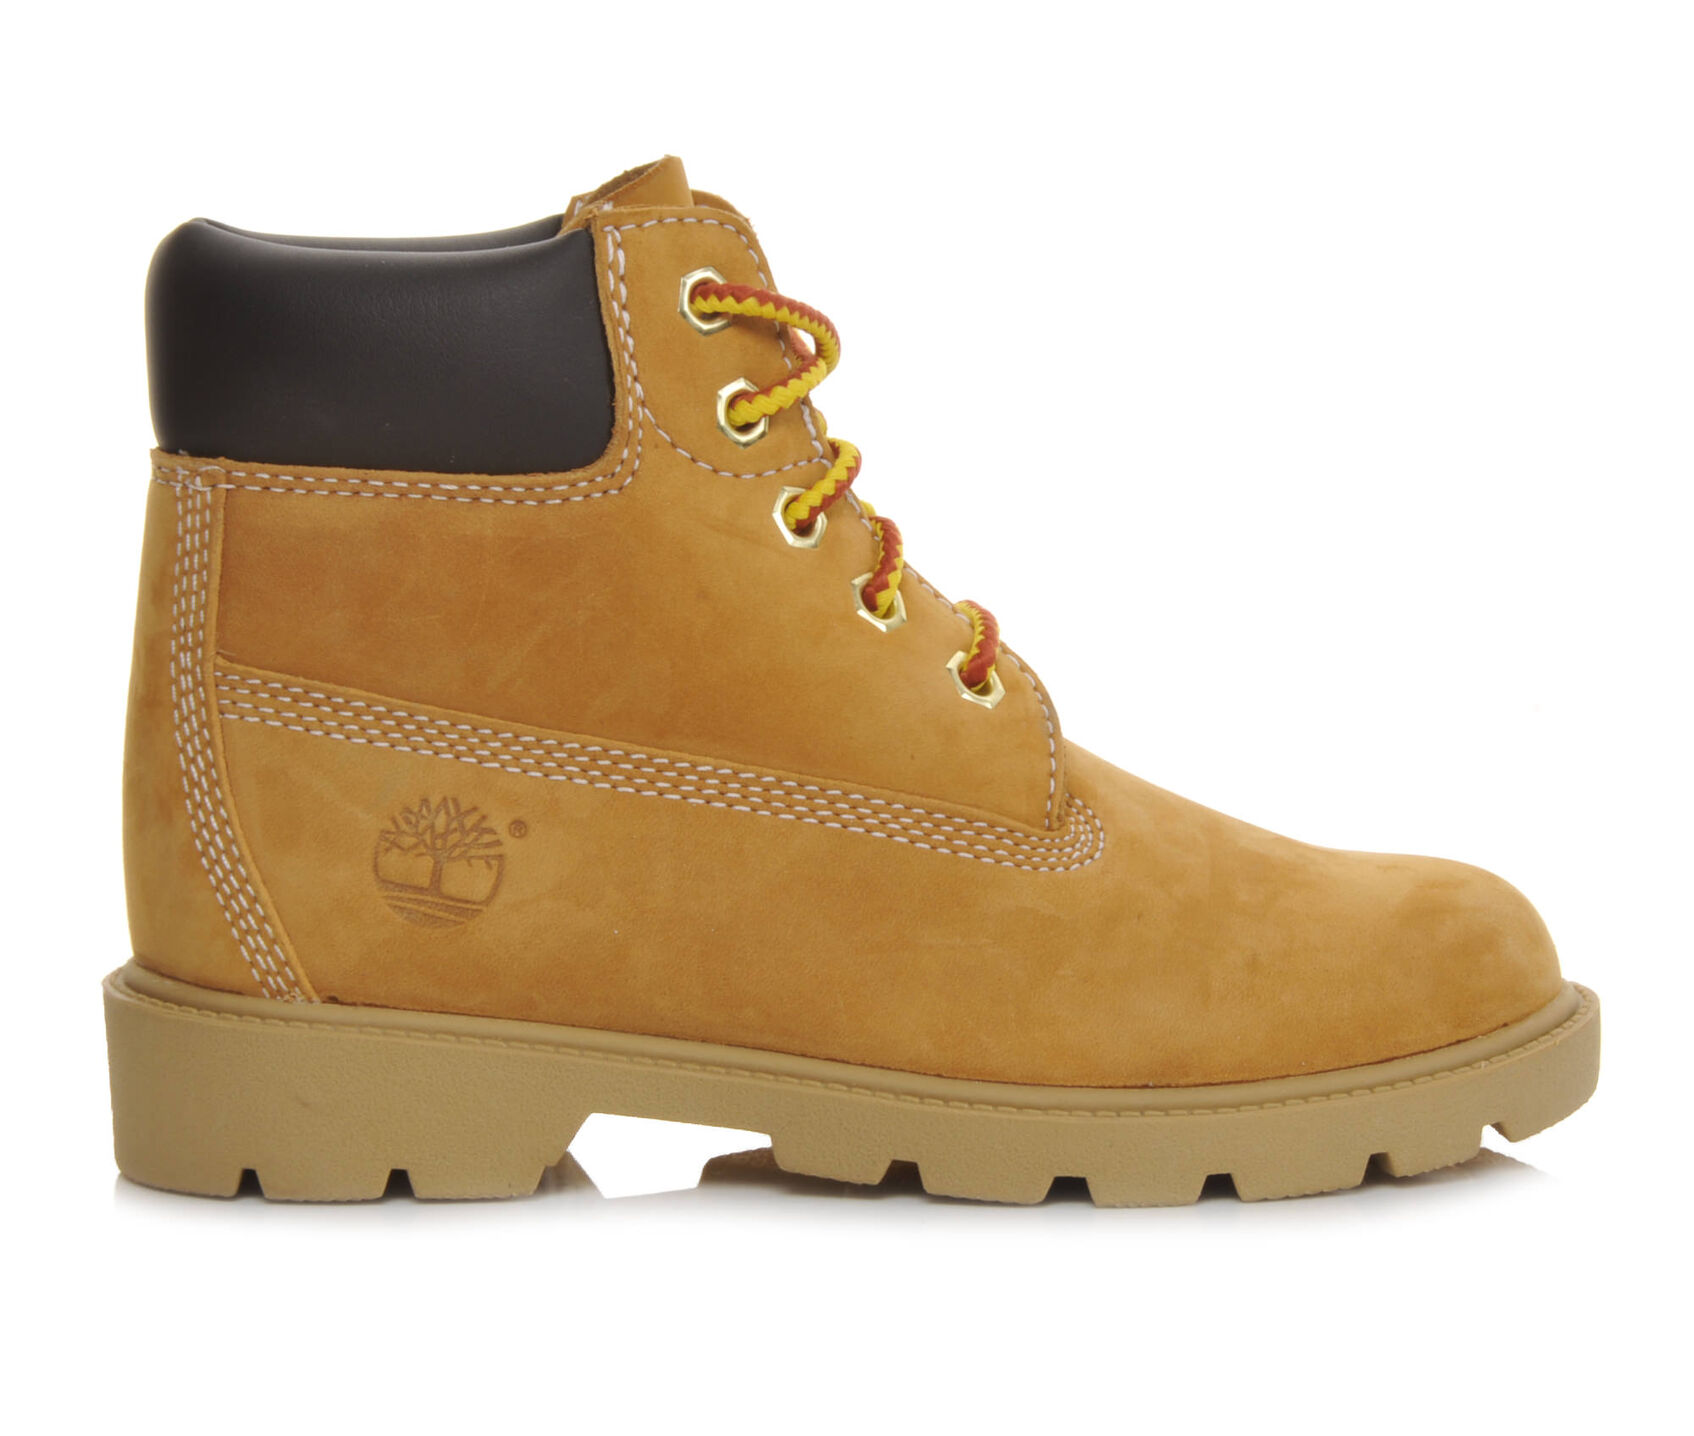 08445af9418a ... Timberland Big Kid 10960 6 Inch Classic Boots. Previous